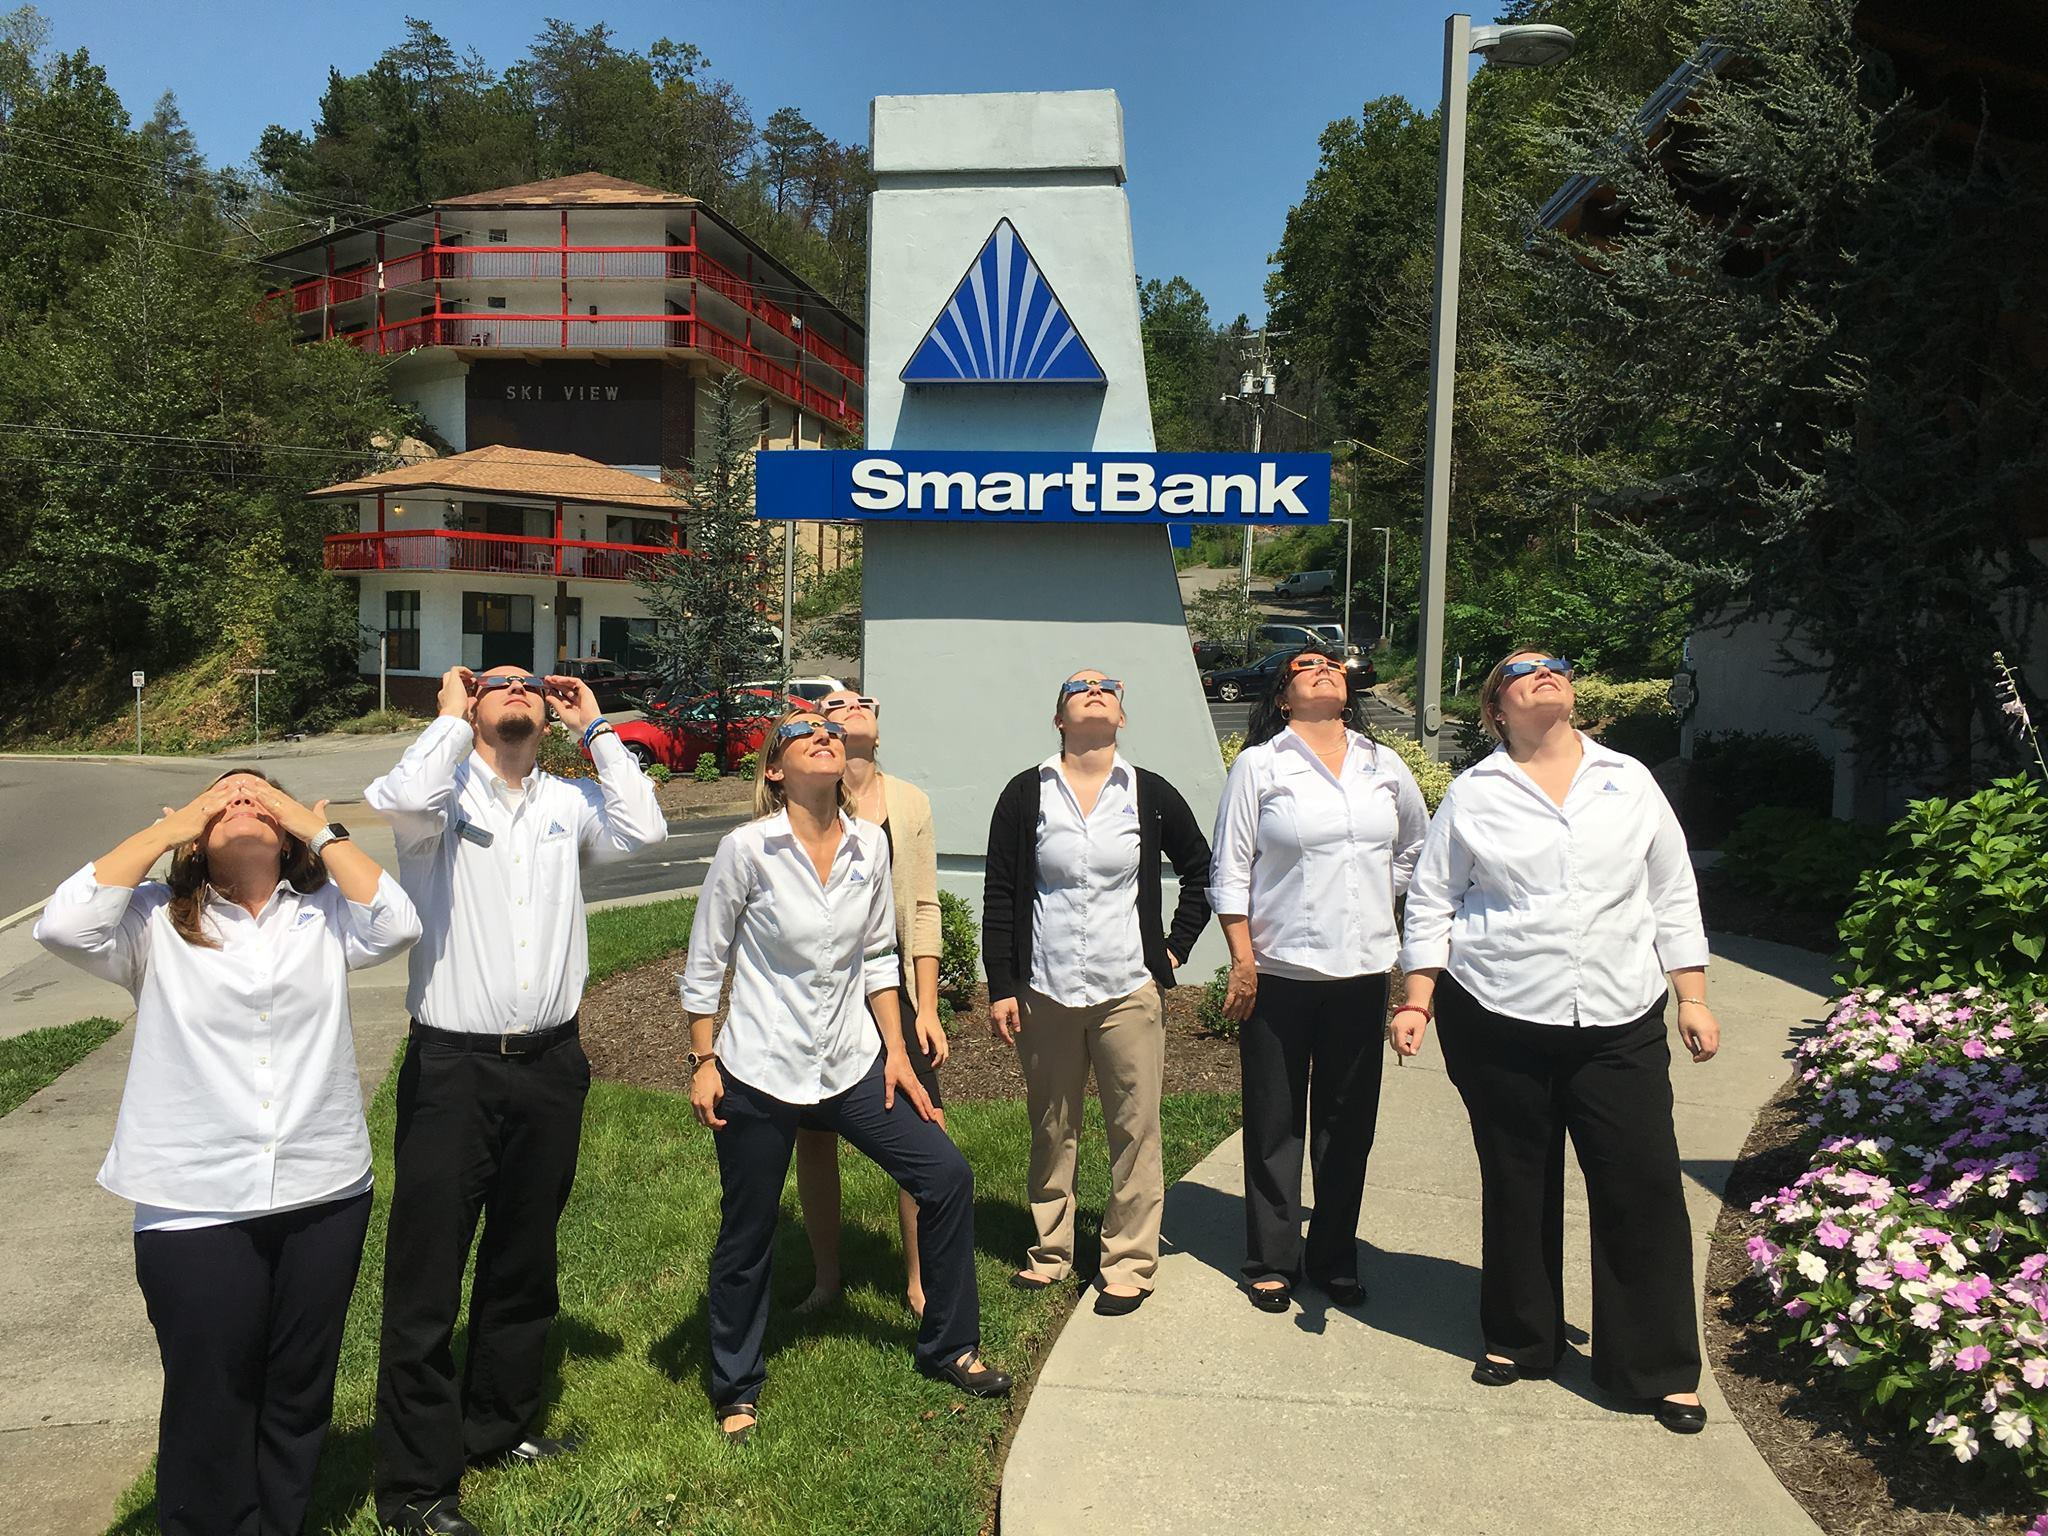 SmartBank Knoxville (Bearden) image 23